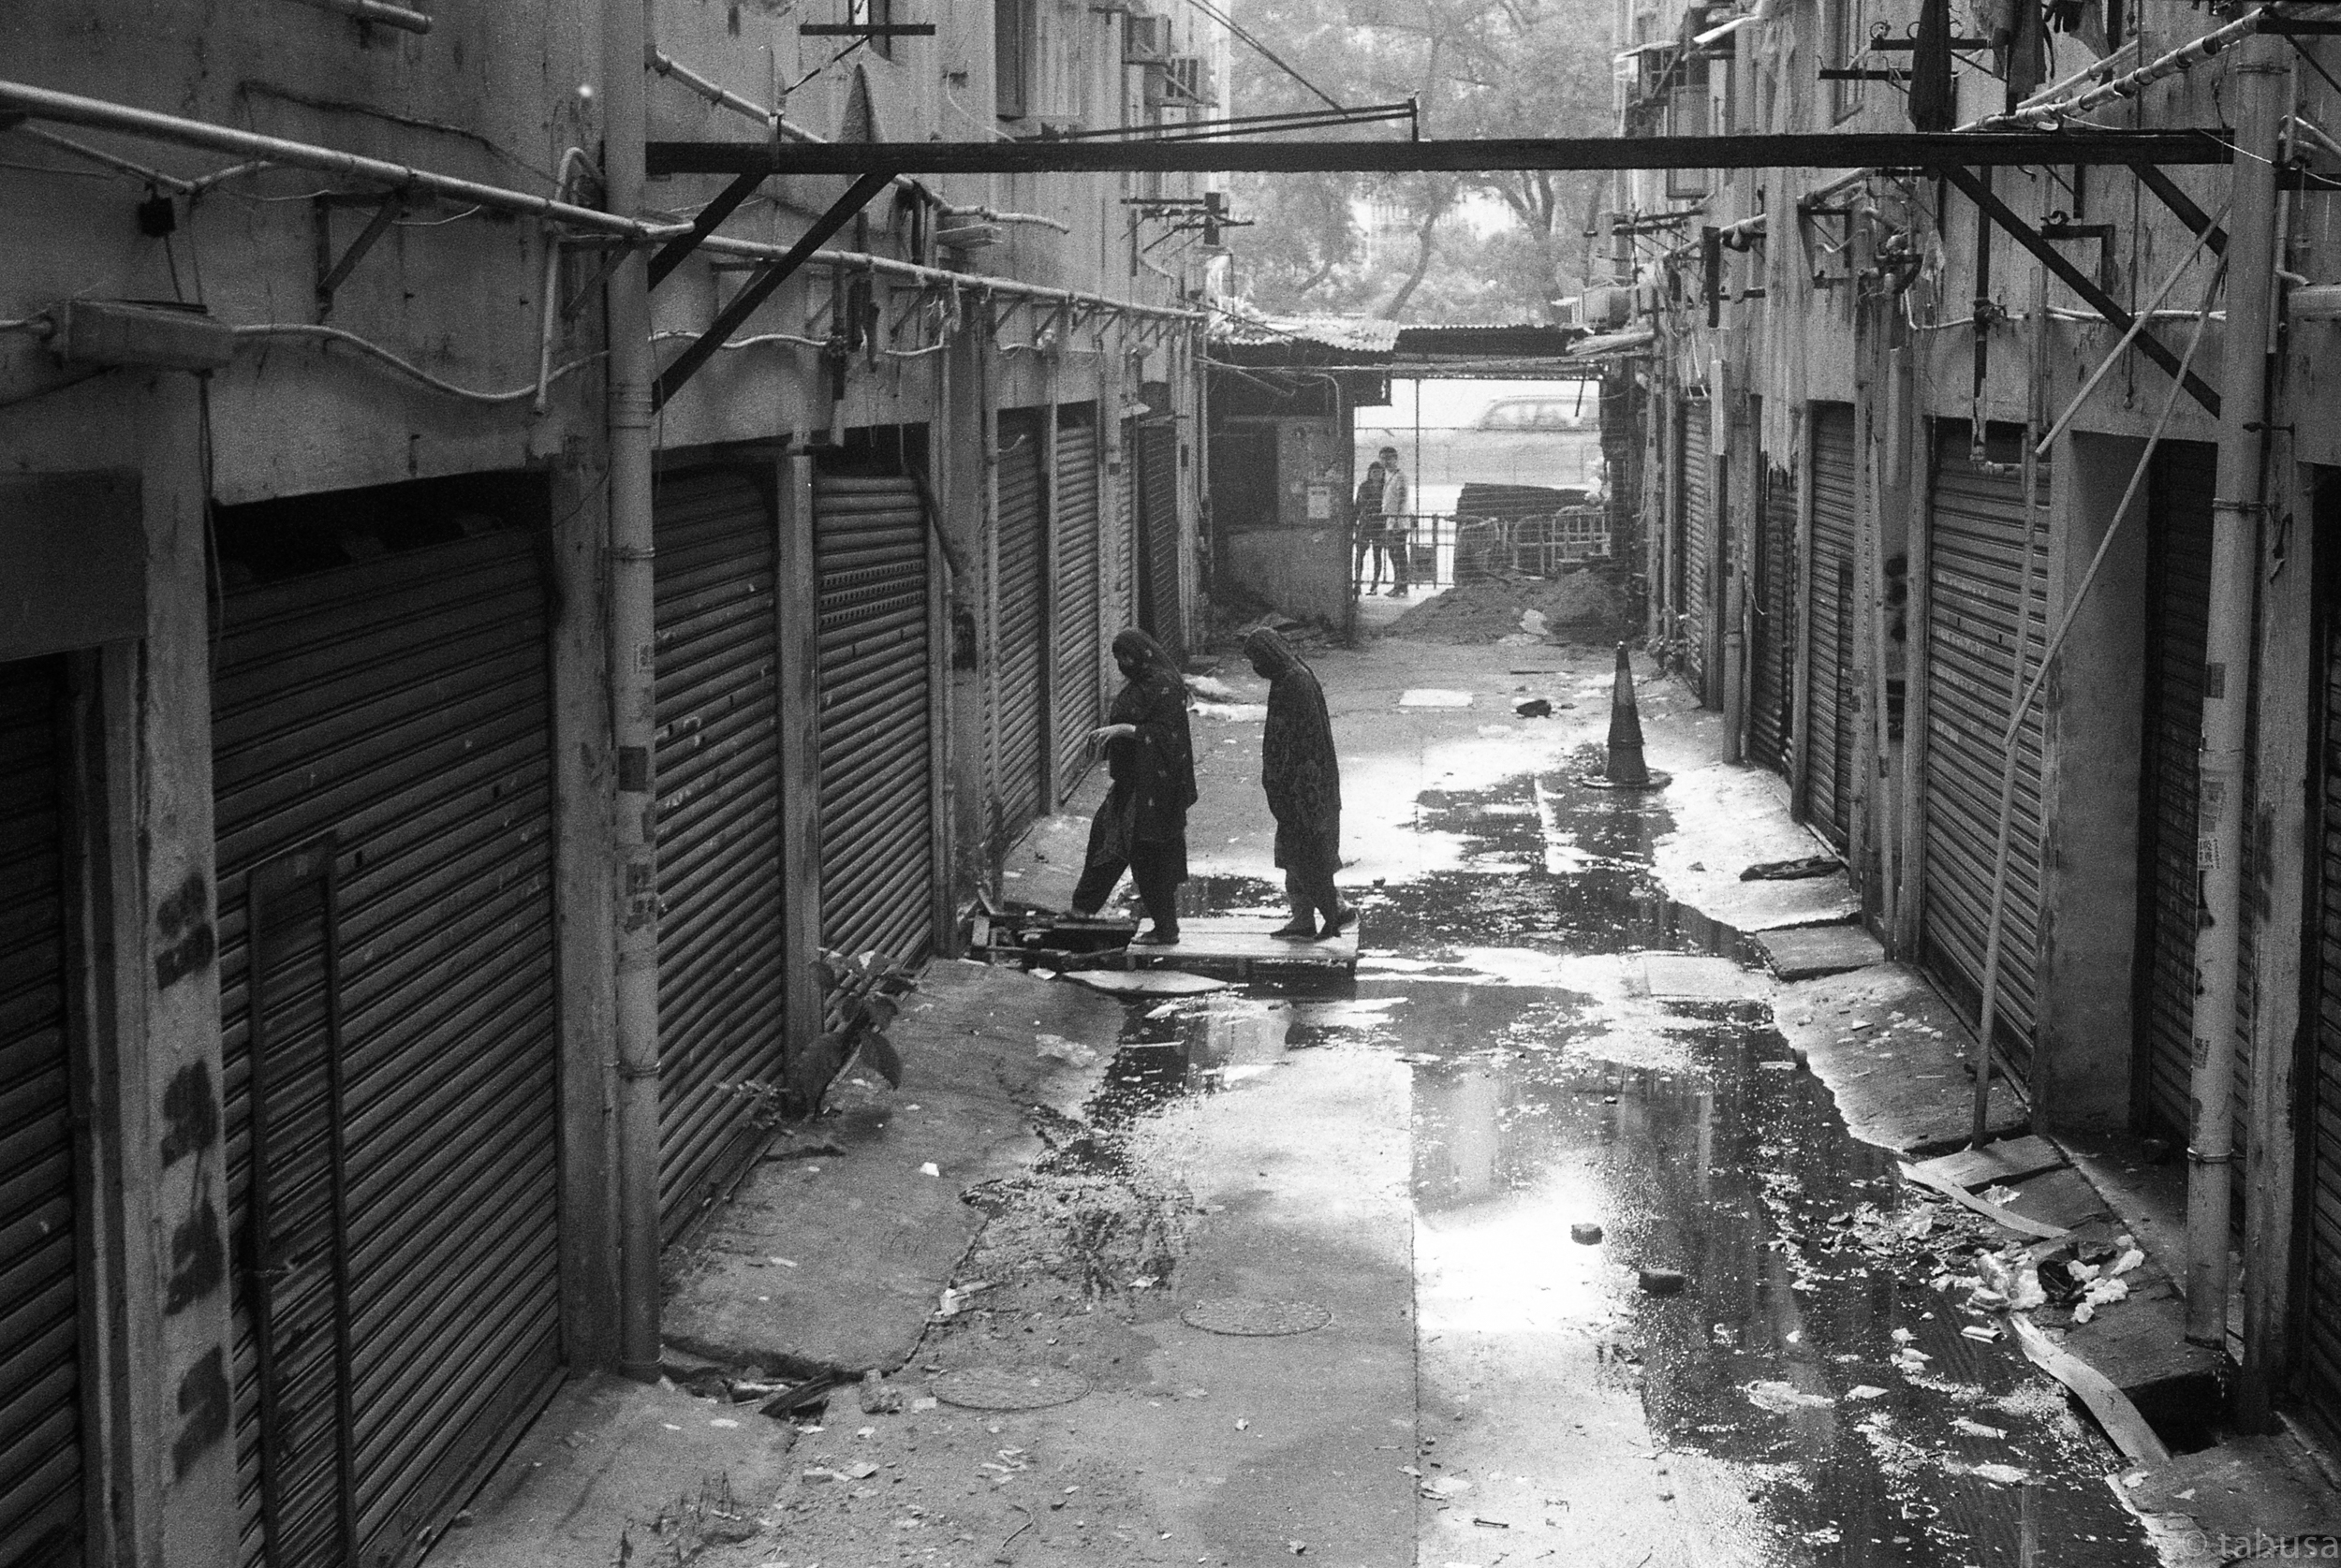 secret-walk-to-other-blocks-Rigid-summicron-50mm-f2-50-leica-Black-and-white-BW-B&W-film-analog-snap-snapshot-Kentmere-Film-DDX-Ilford-Hong-Kong-Minorities-Slum